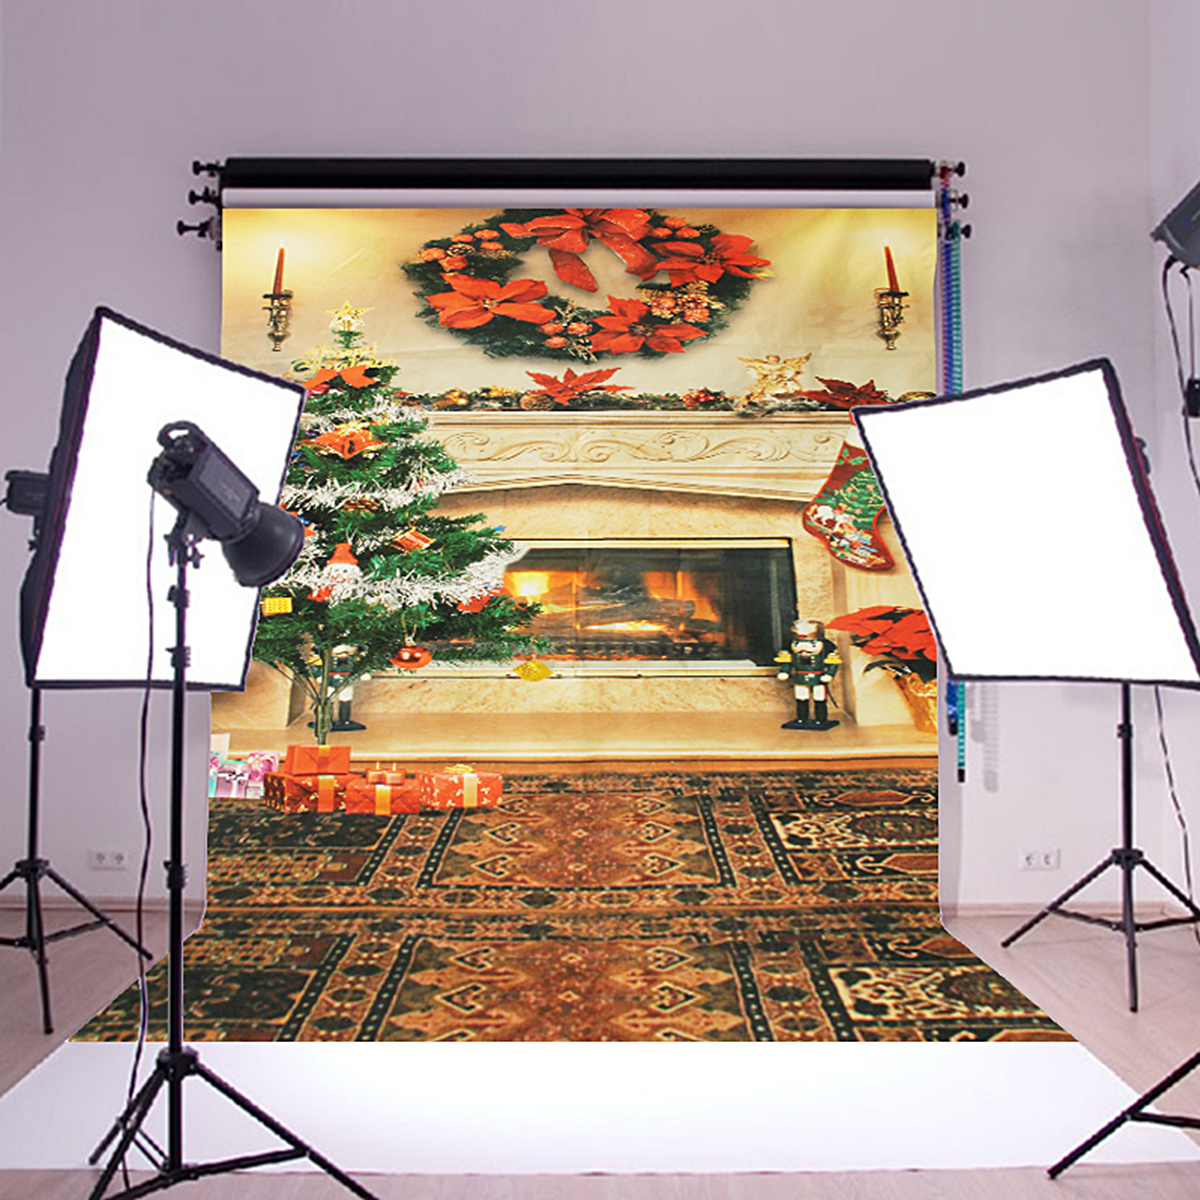 Toile de fond vinyl backdrop photographie photo studio - Toile decorative murale ...